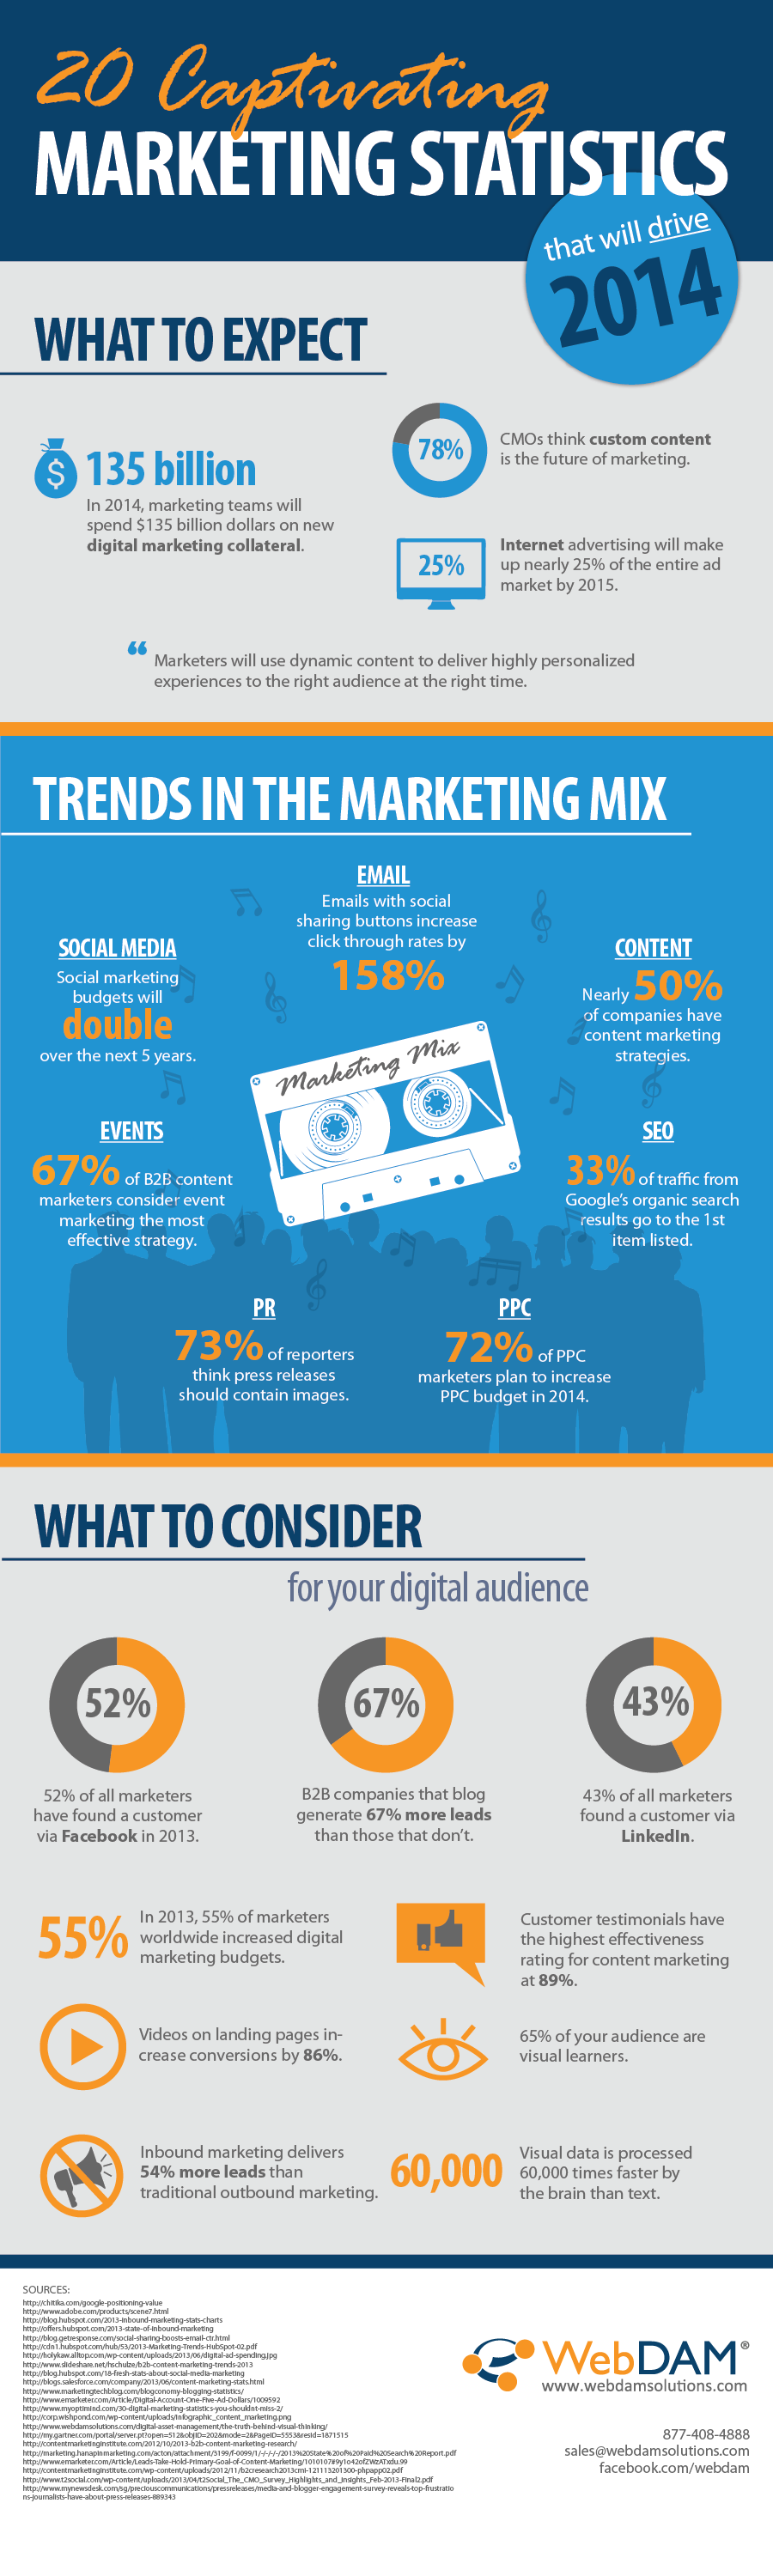 20-Captivating-Content-Marketing-Facts-and-Figures-in-2014